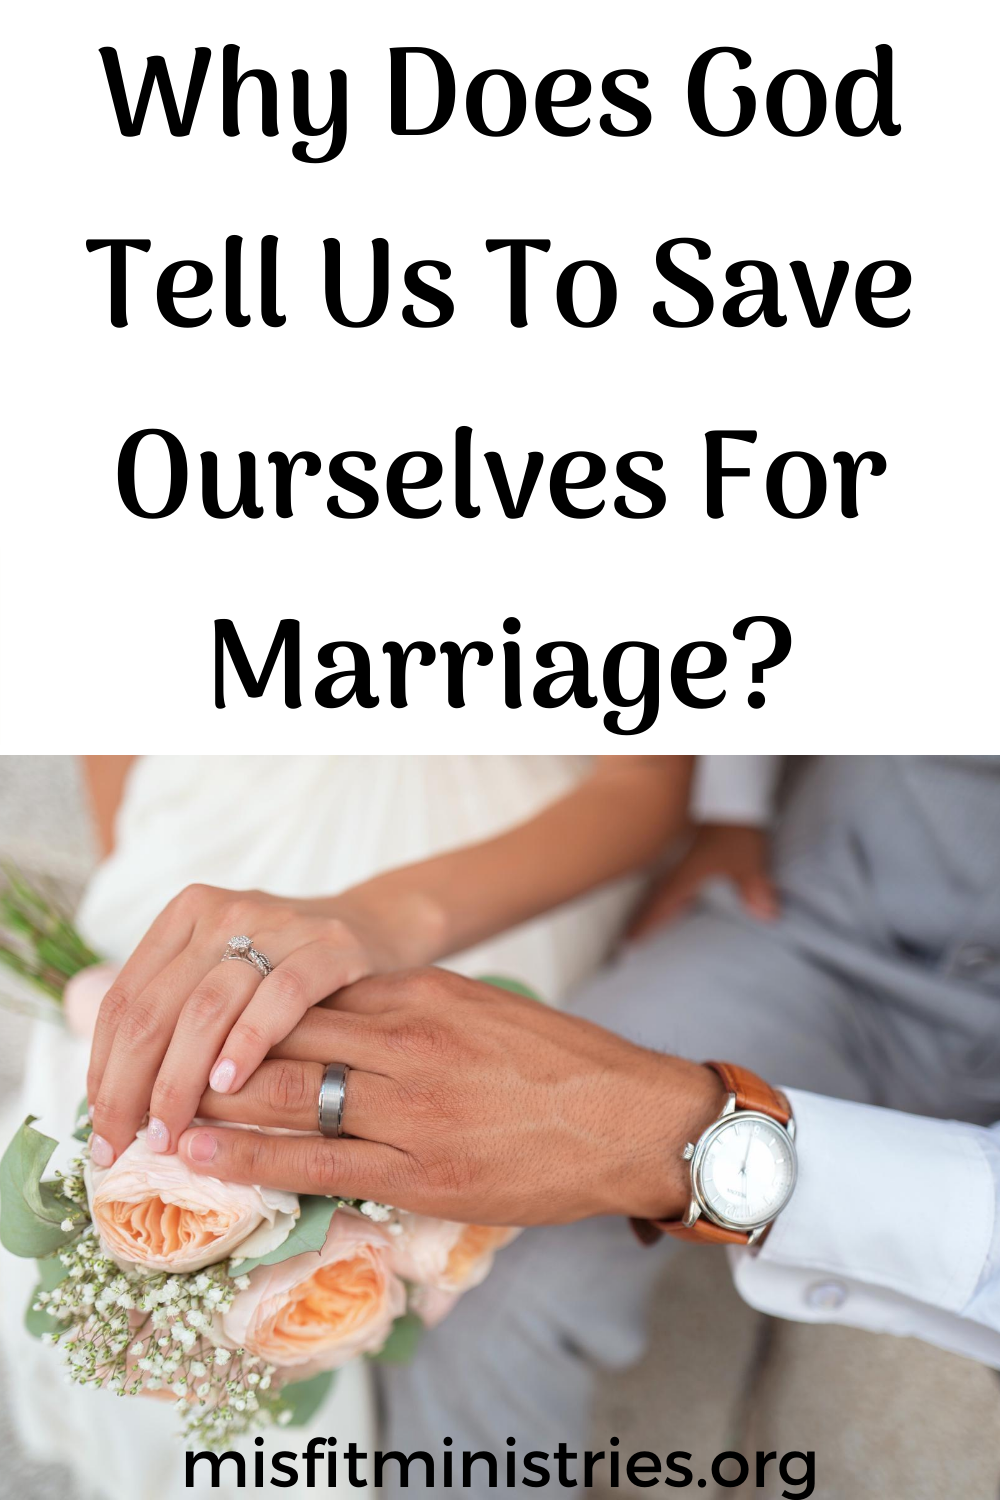 Why must we wait until marriage for sexWhy must we wait until marriage for sex